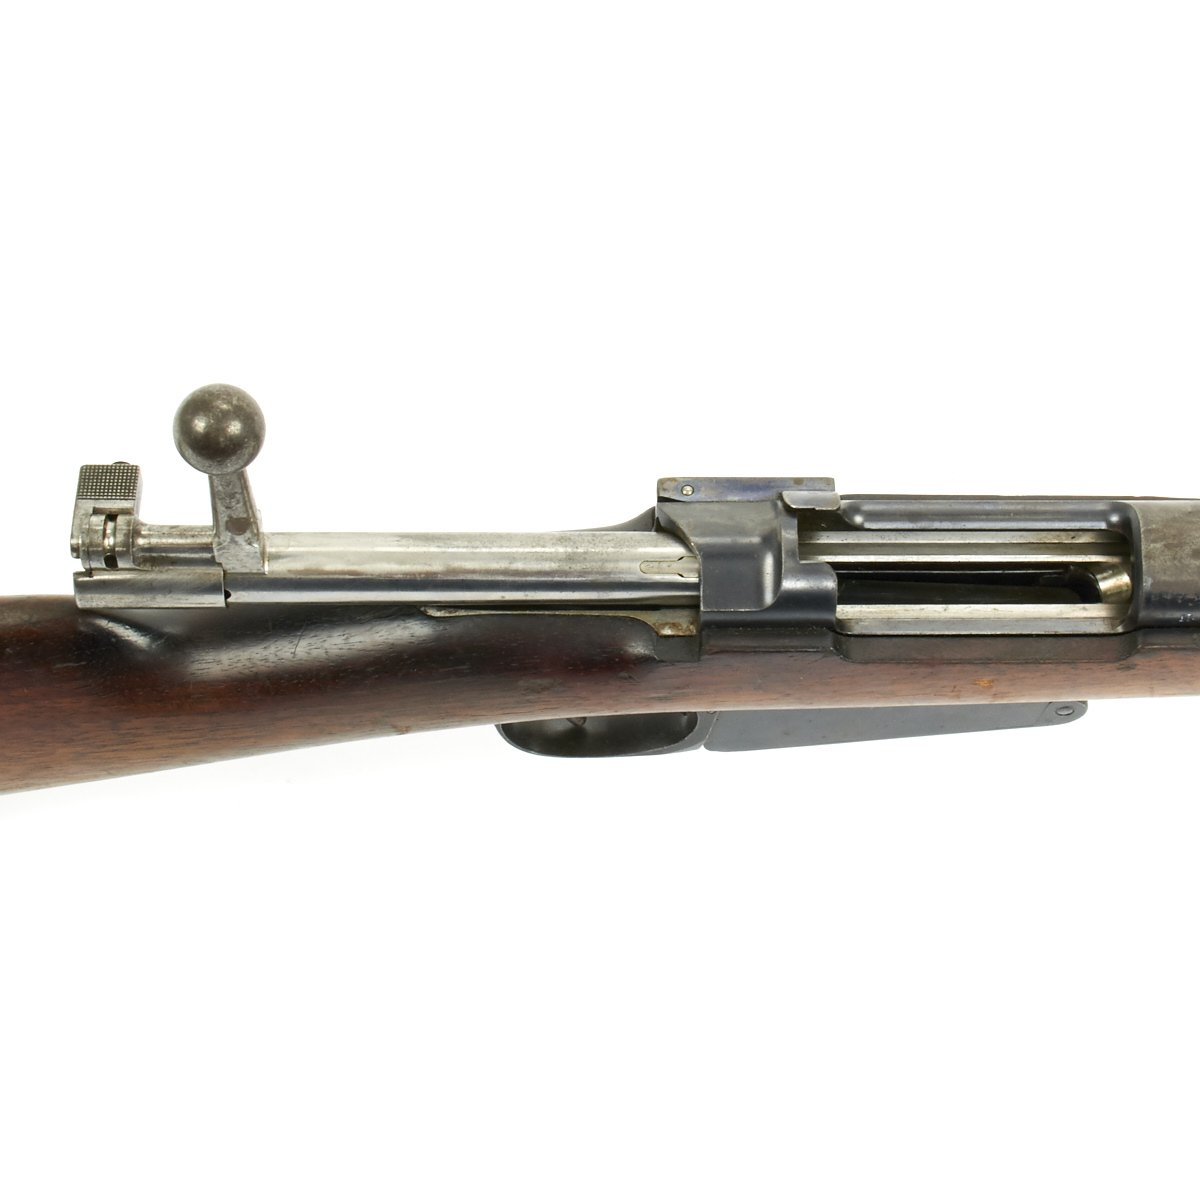 Original German Manufactured Model 1891 Argentine Mauser Service